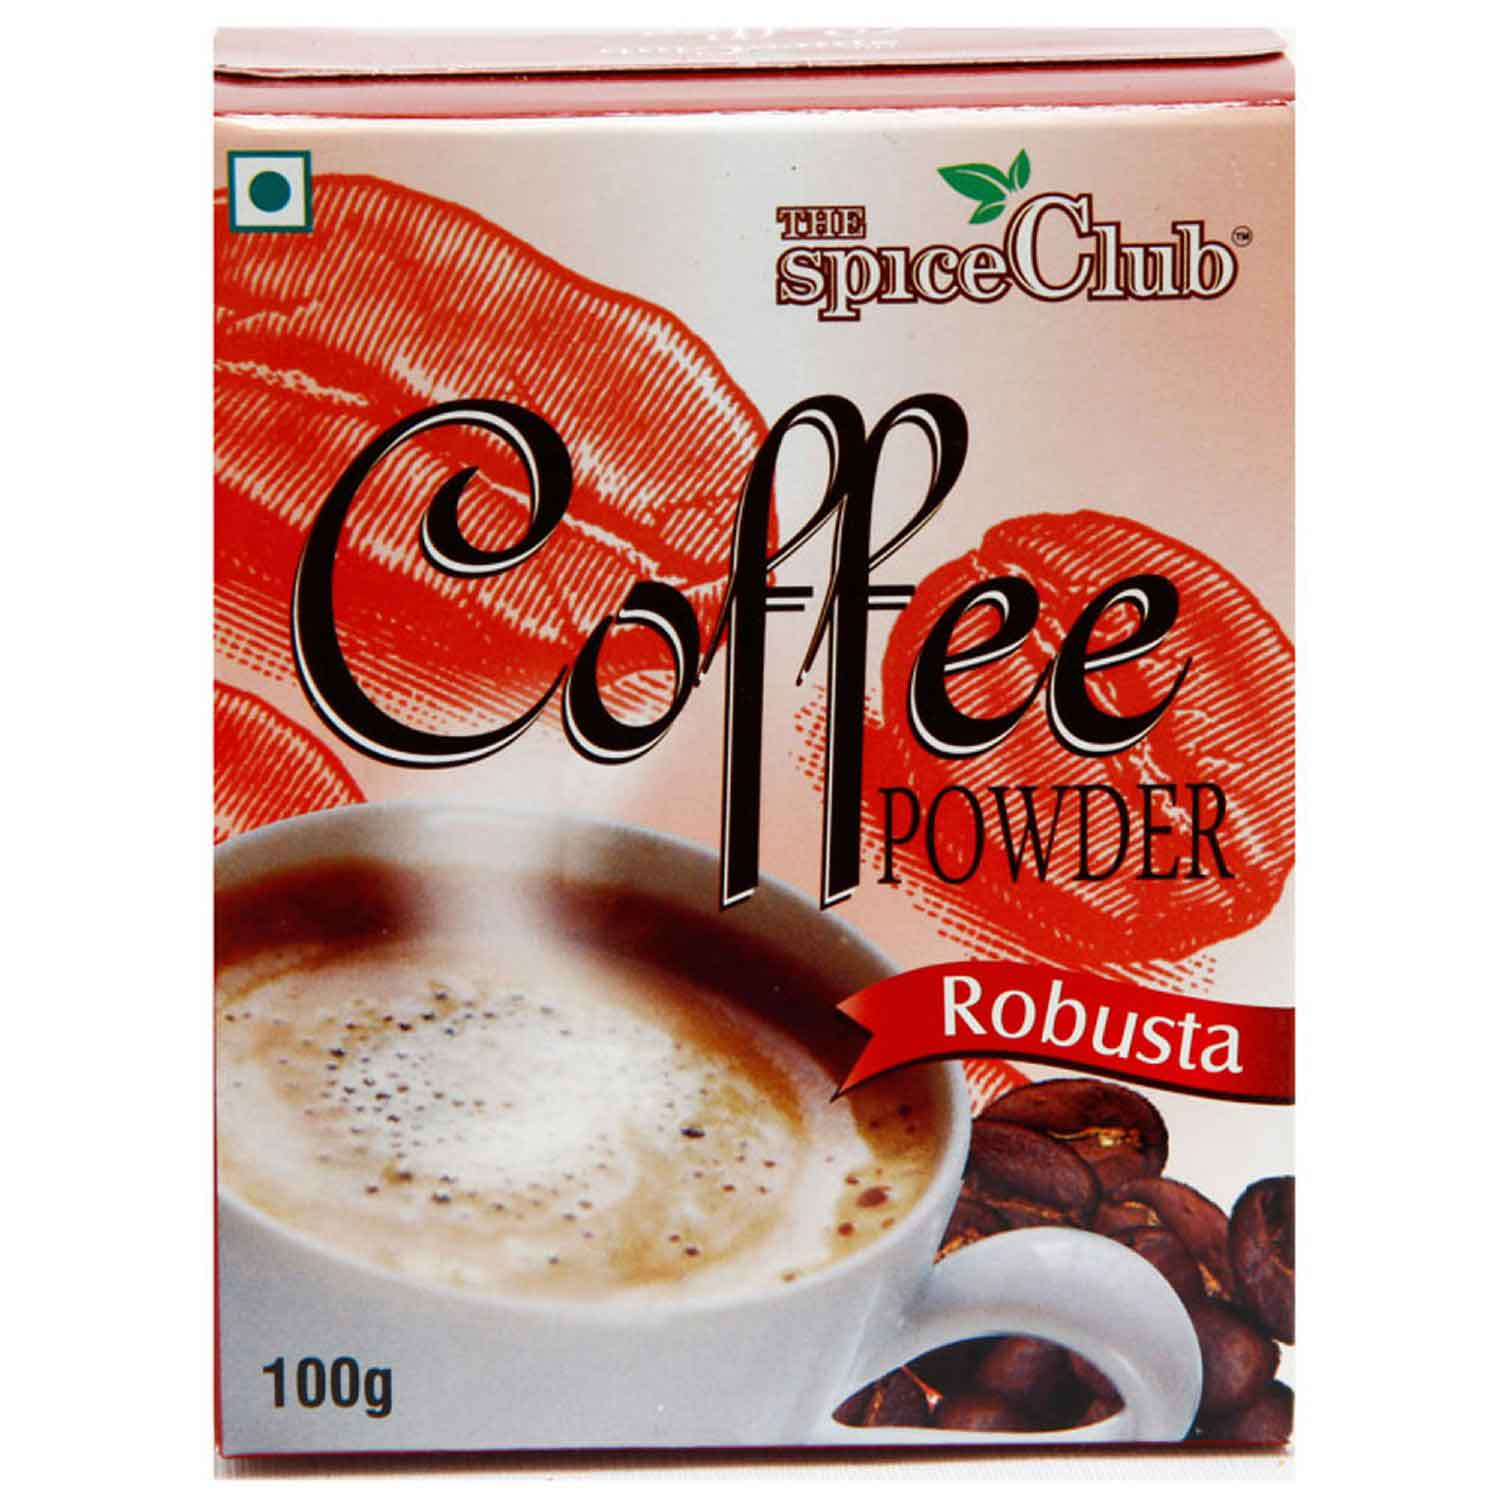 Robusta Coffee Powder 100g